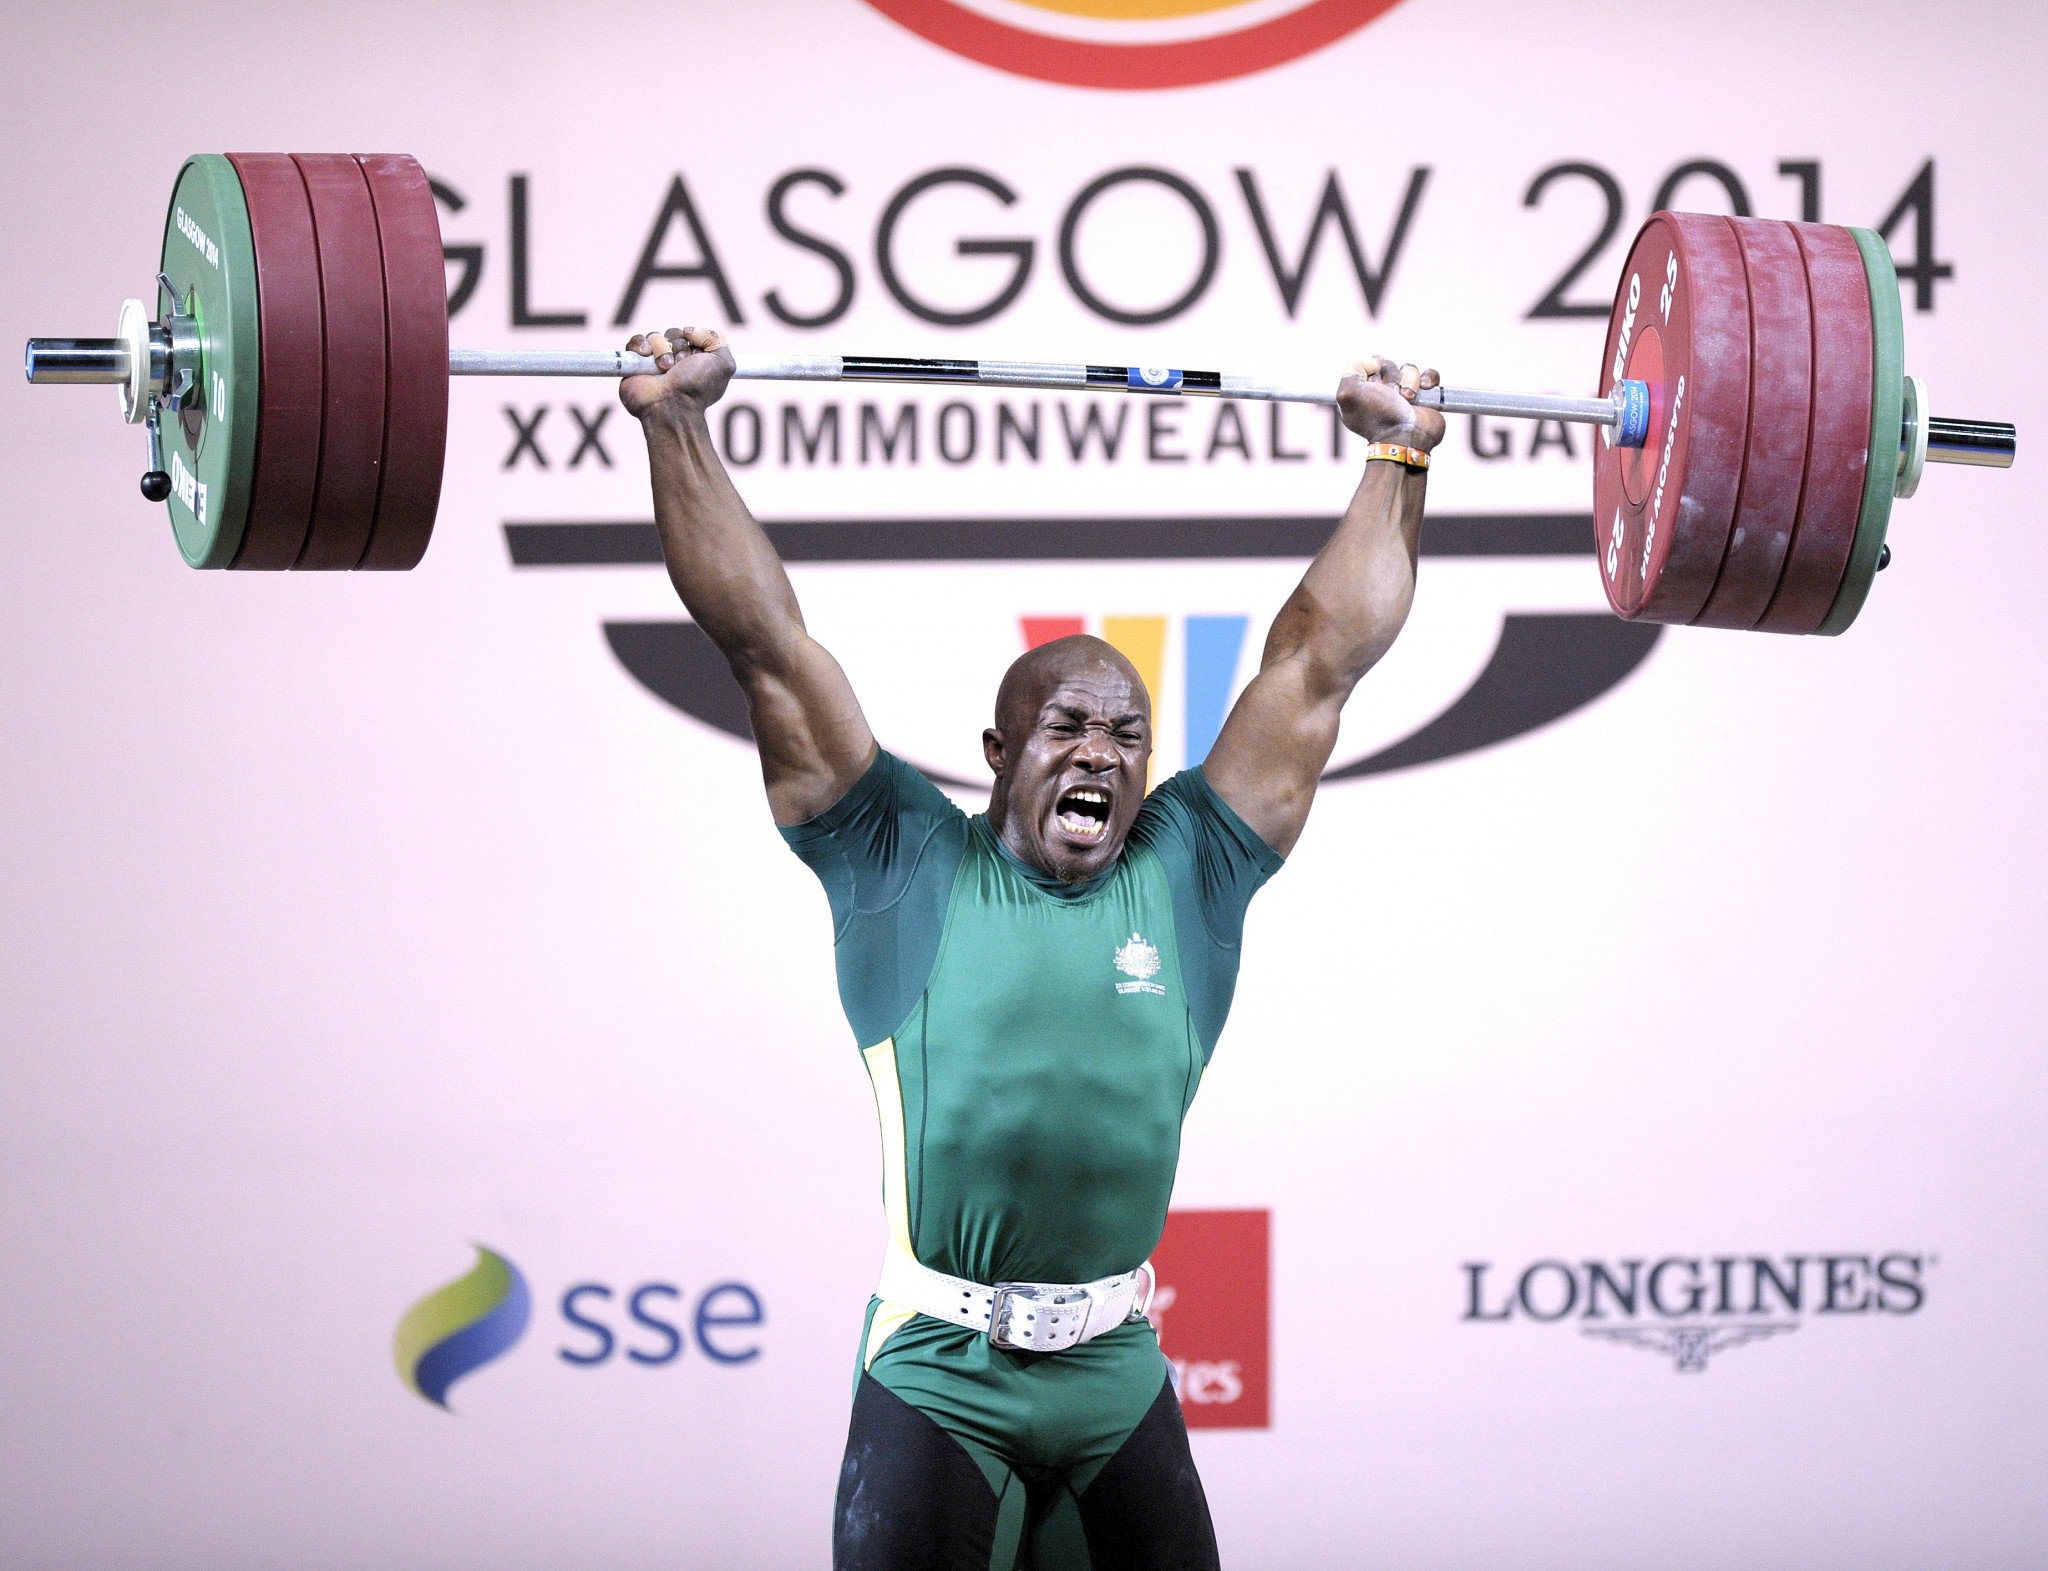 Simplice Ribouem, who used to compete for Cameroon before switching to Australia, is set to make his fourth Commonwealth Games appearance at Gold Coast 2018 ©Getty Images